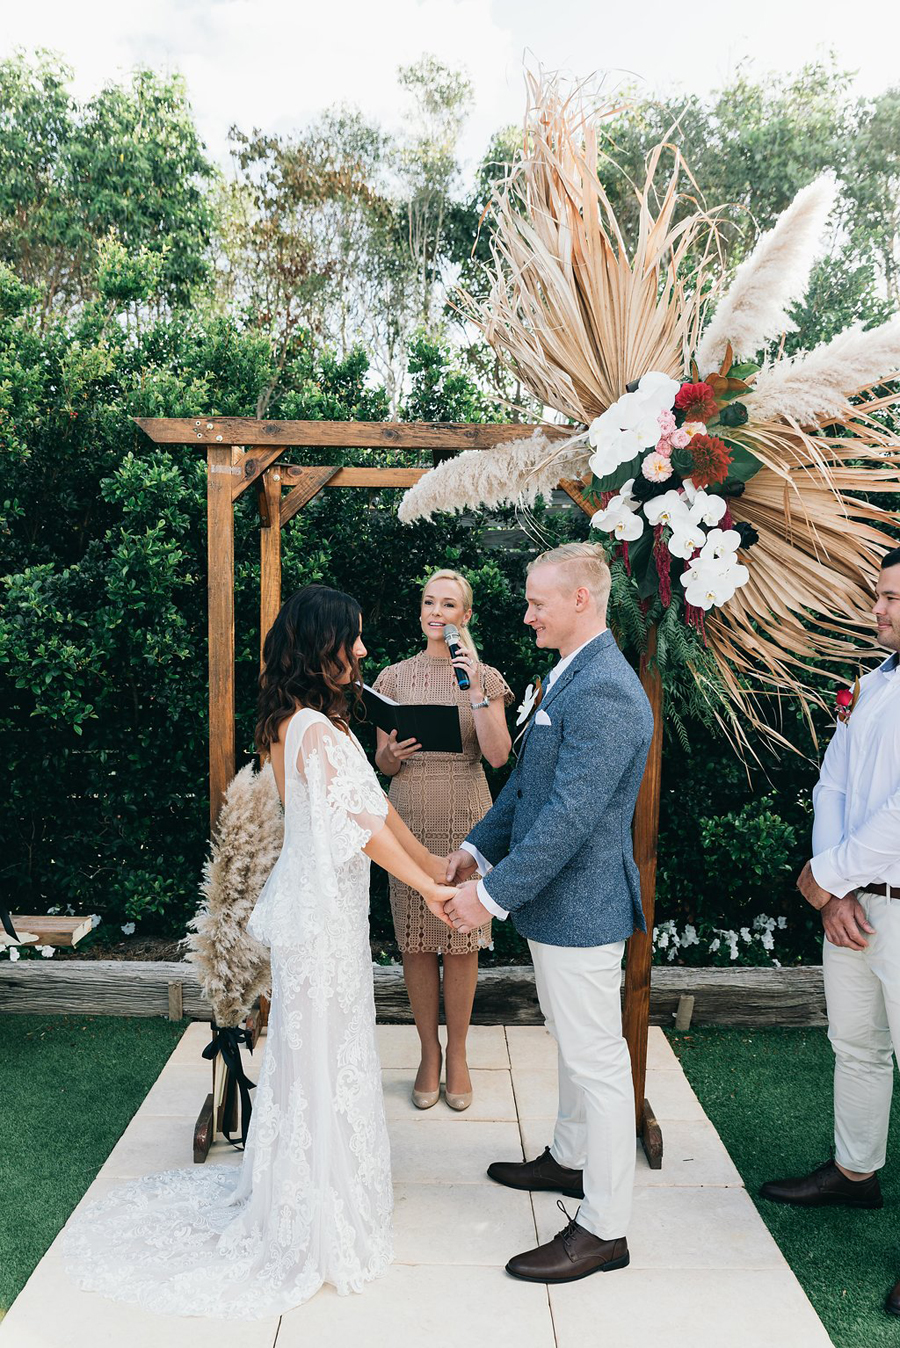 tweed-coast-weddings-wedding-venue-osteria-casuarina-garden-ceremony-reception-coastal-elyse-peter022.jpg